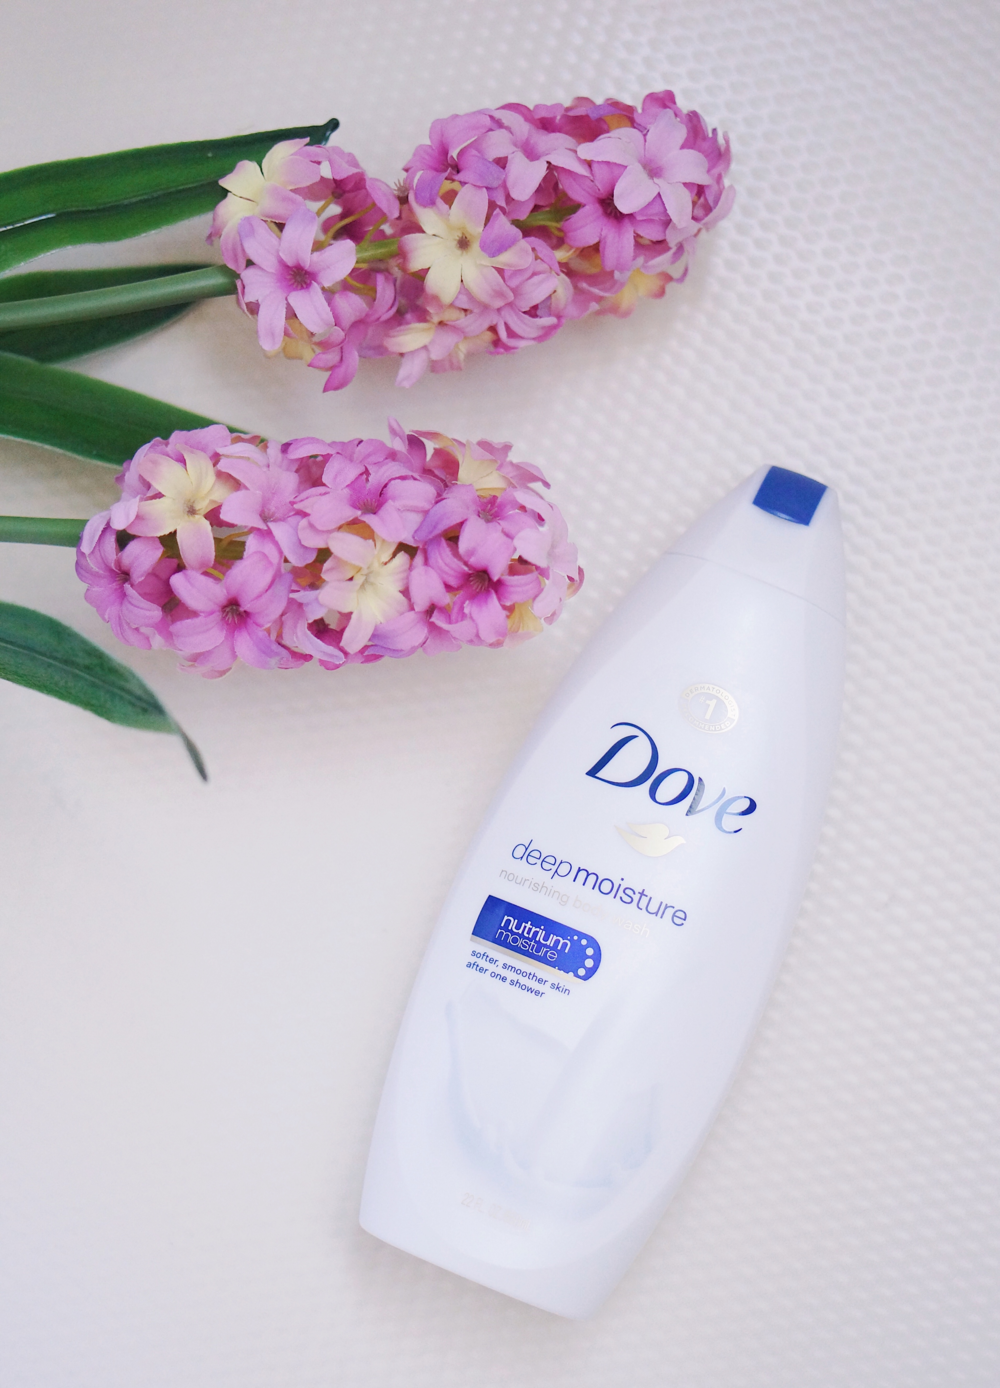 Dove Deep Moisture Body Wash